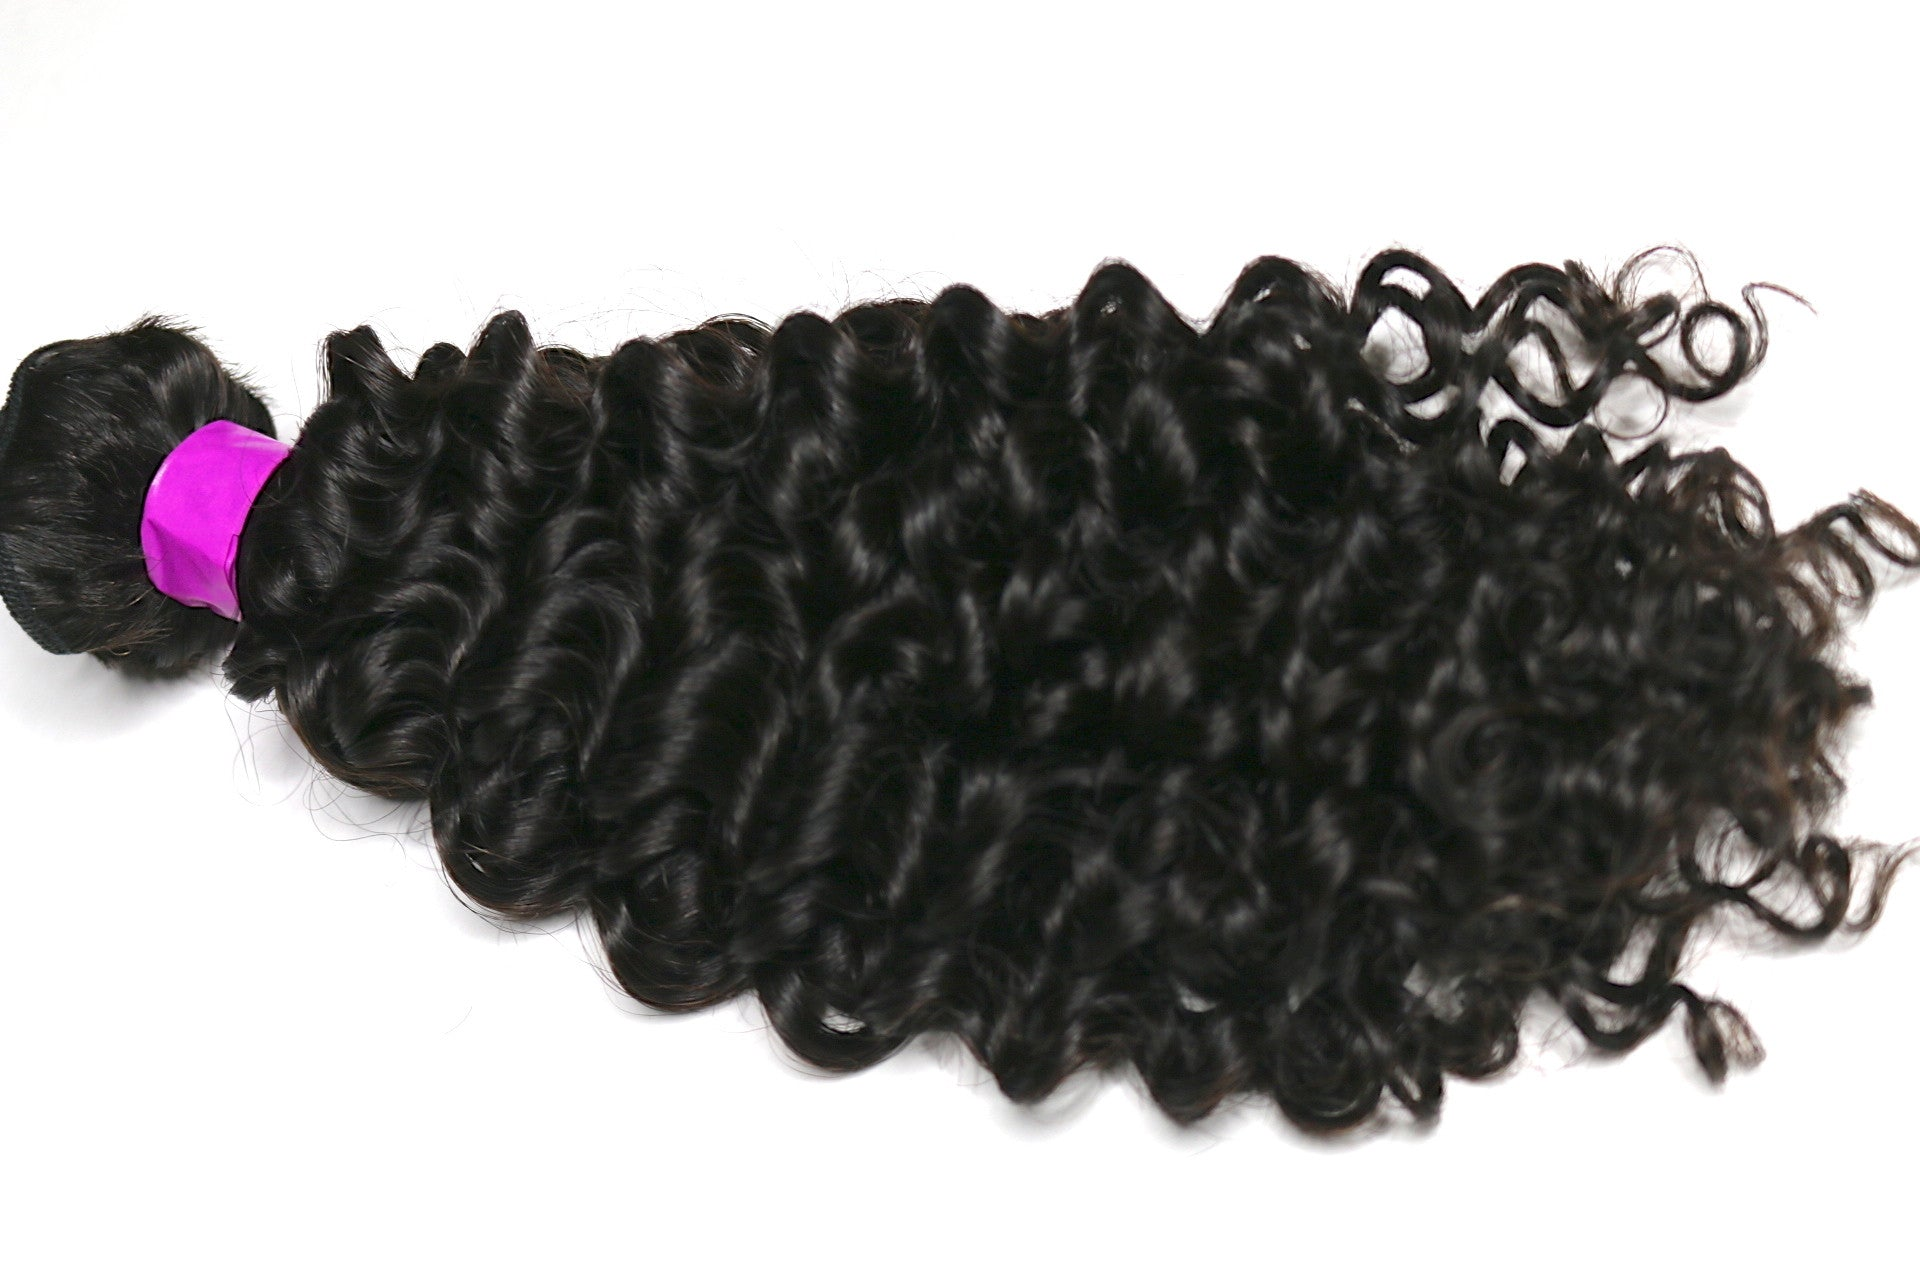 RADIANCE BRAZILIAN CURLY! CHRISTMAS SALE!